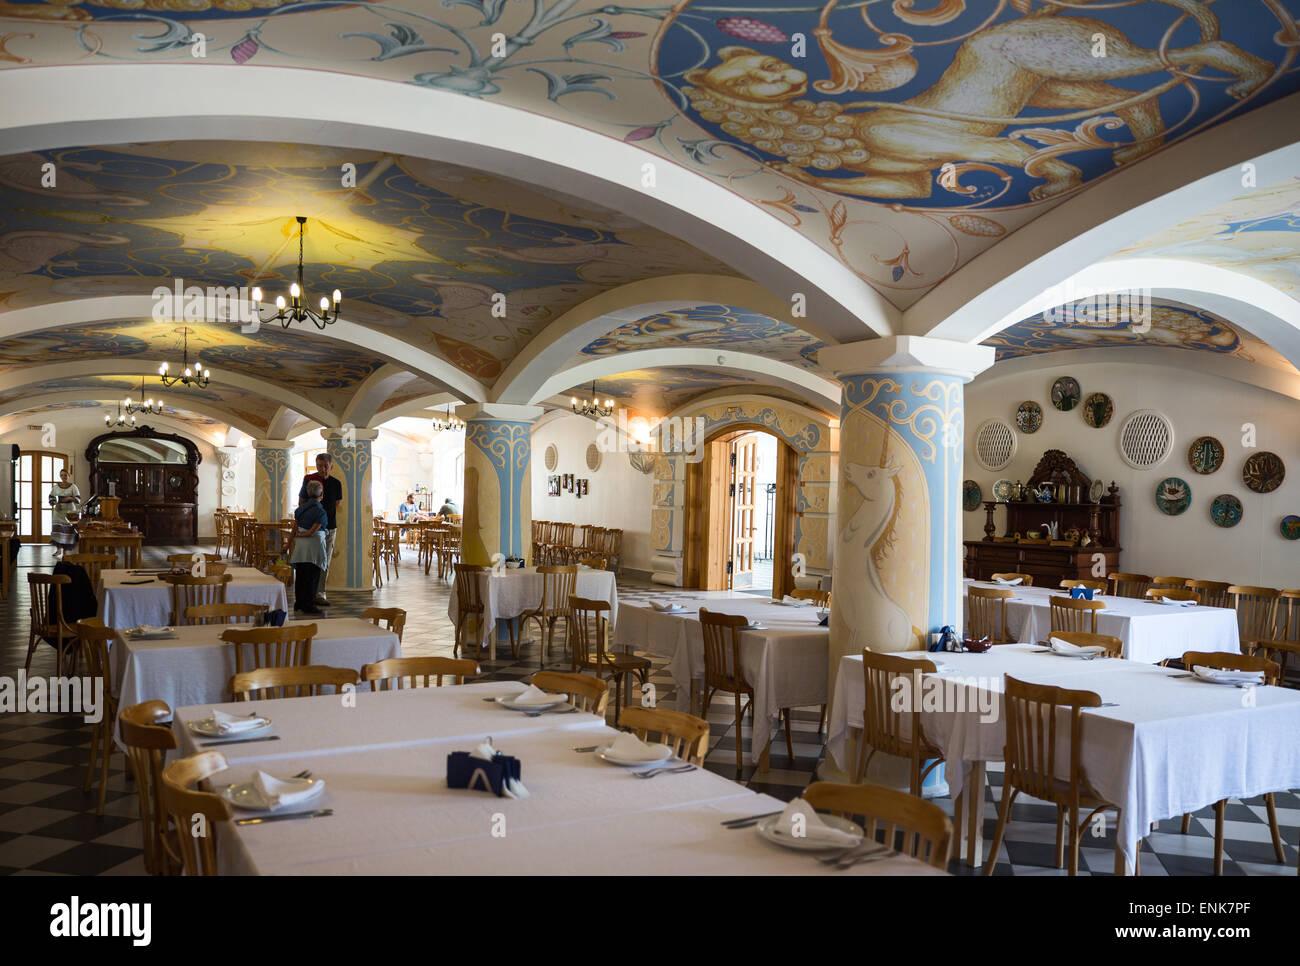 Russia, Leningrad region, Mandrogi, a craft village on the Svir river bank, an elegant restaurant of a new resort - Stock Image